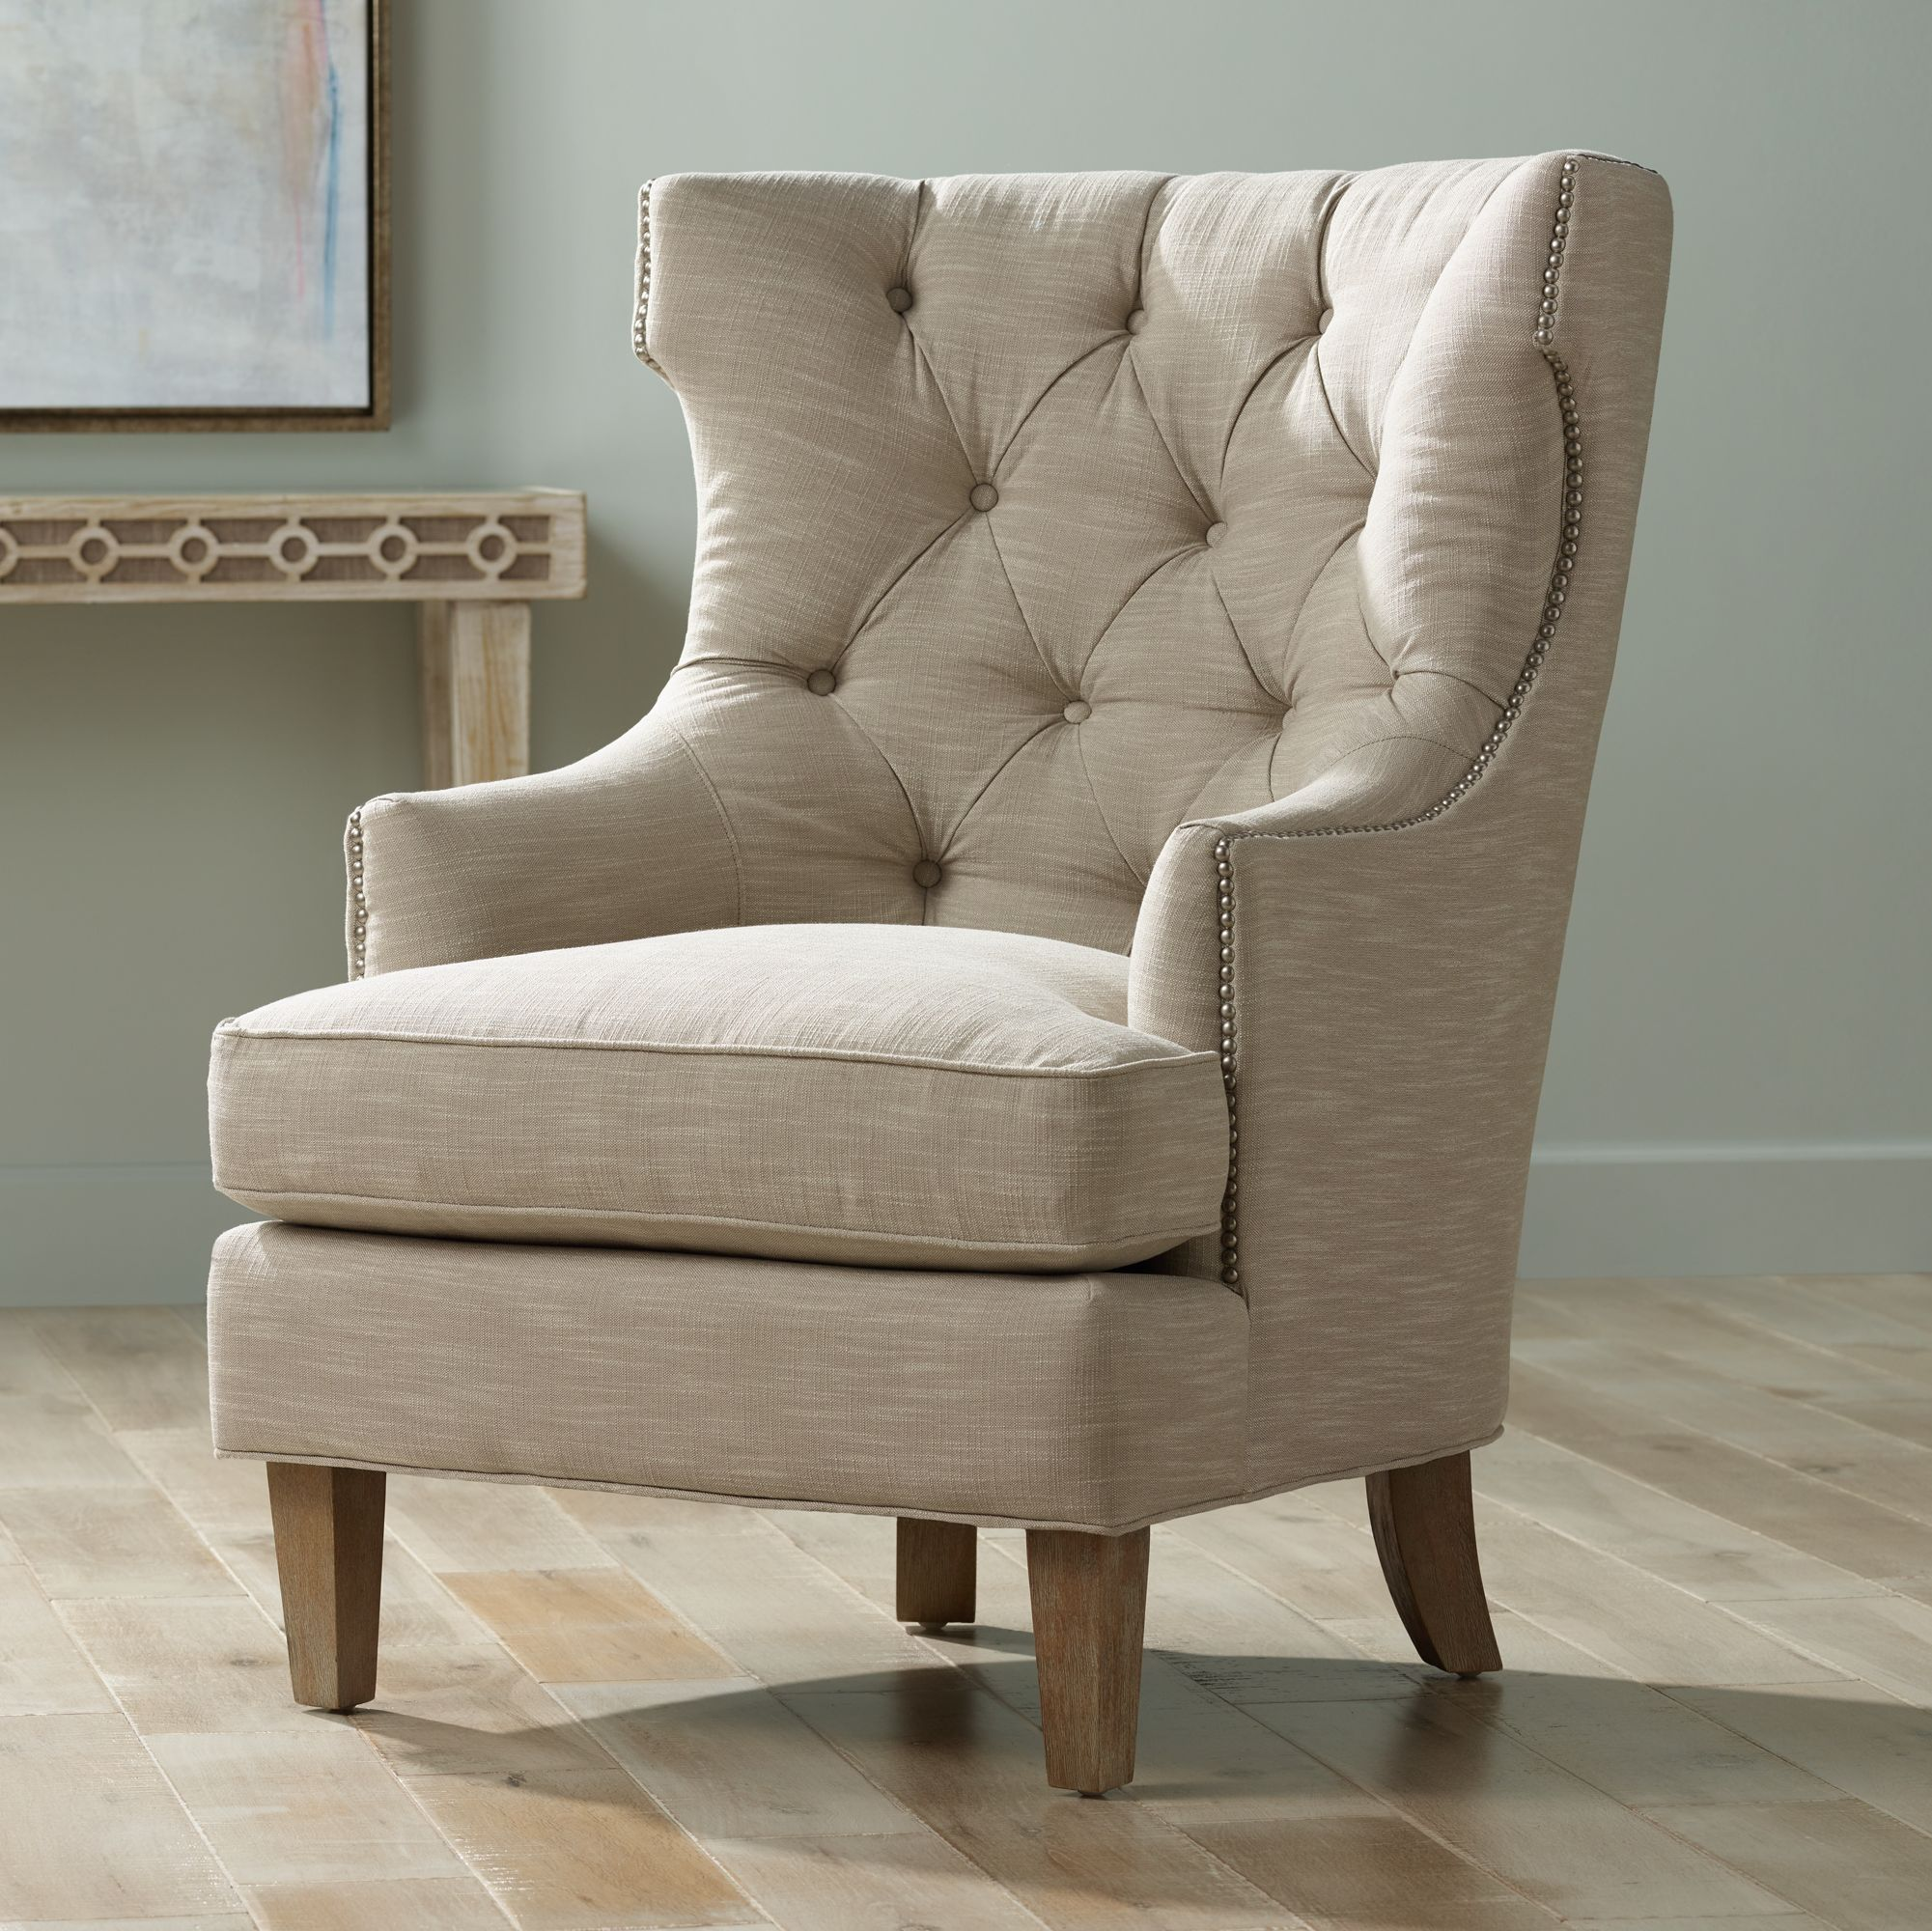 Charmant Reese Studio Oatmeal High Back Accent Chair